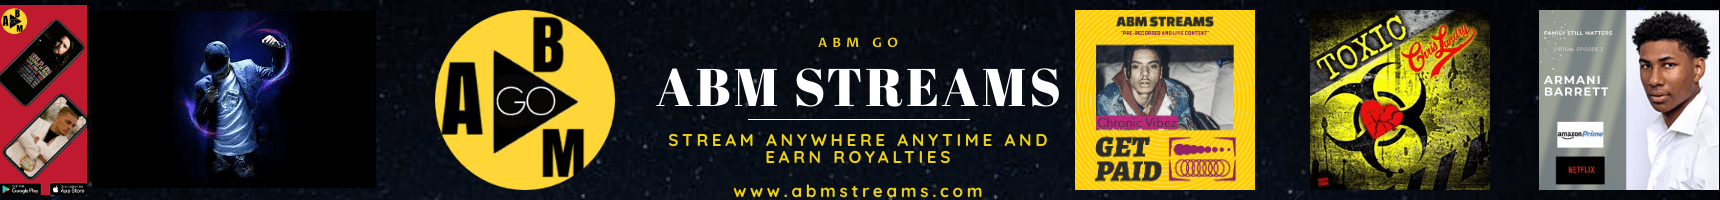 ABM Go Streams